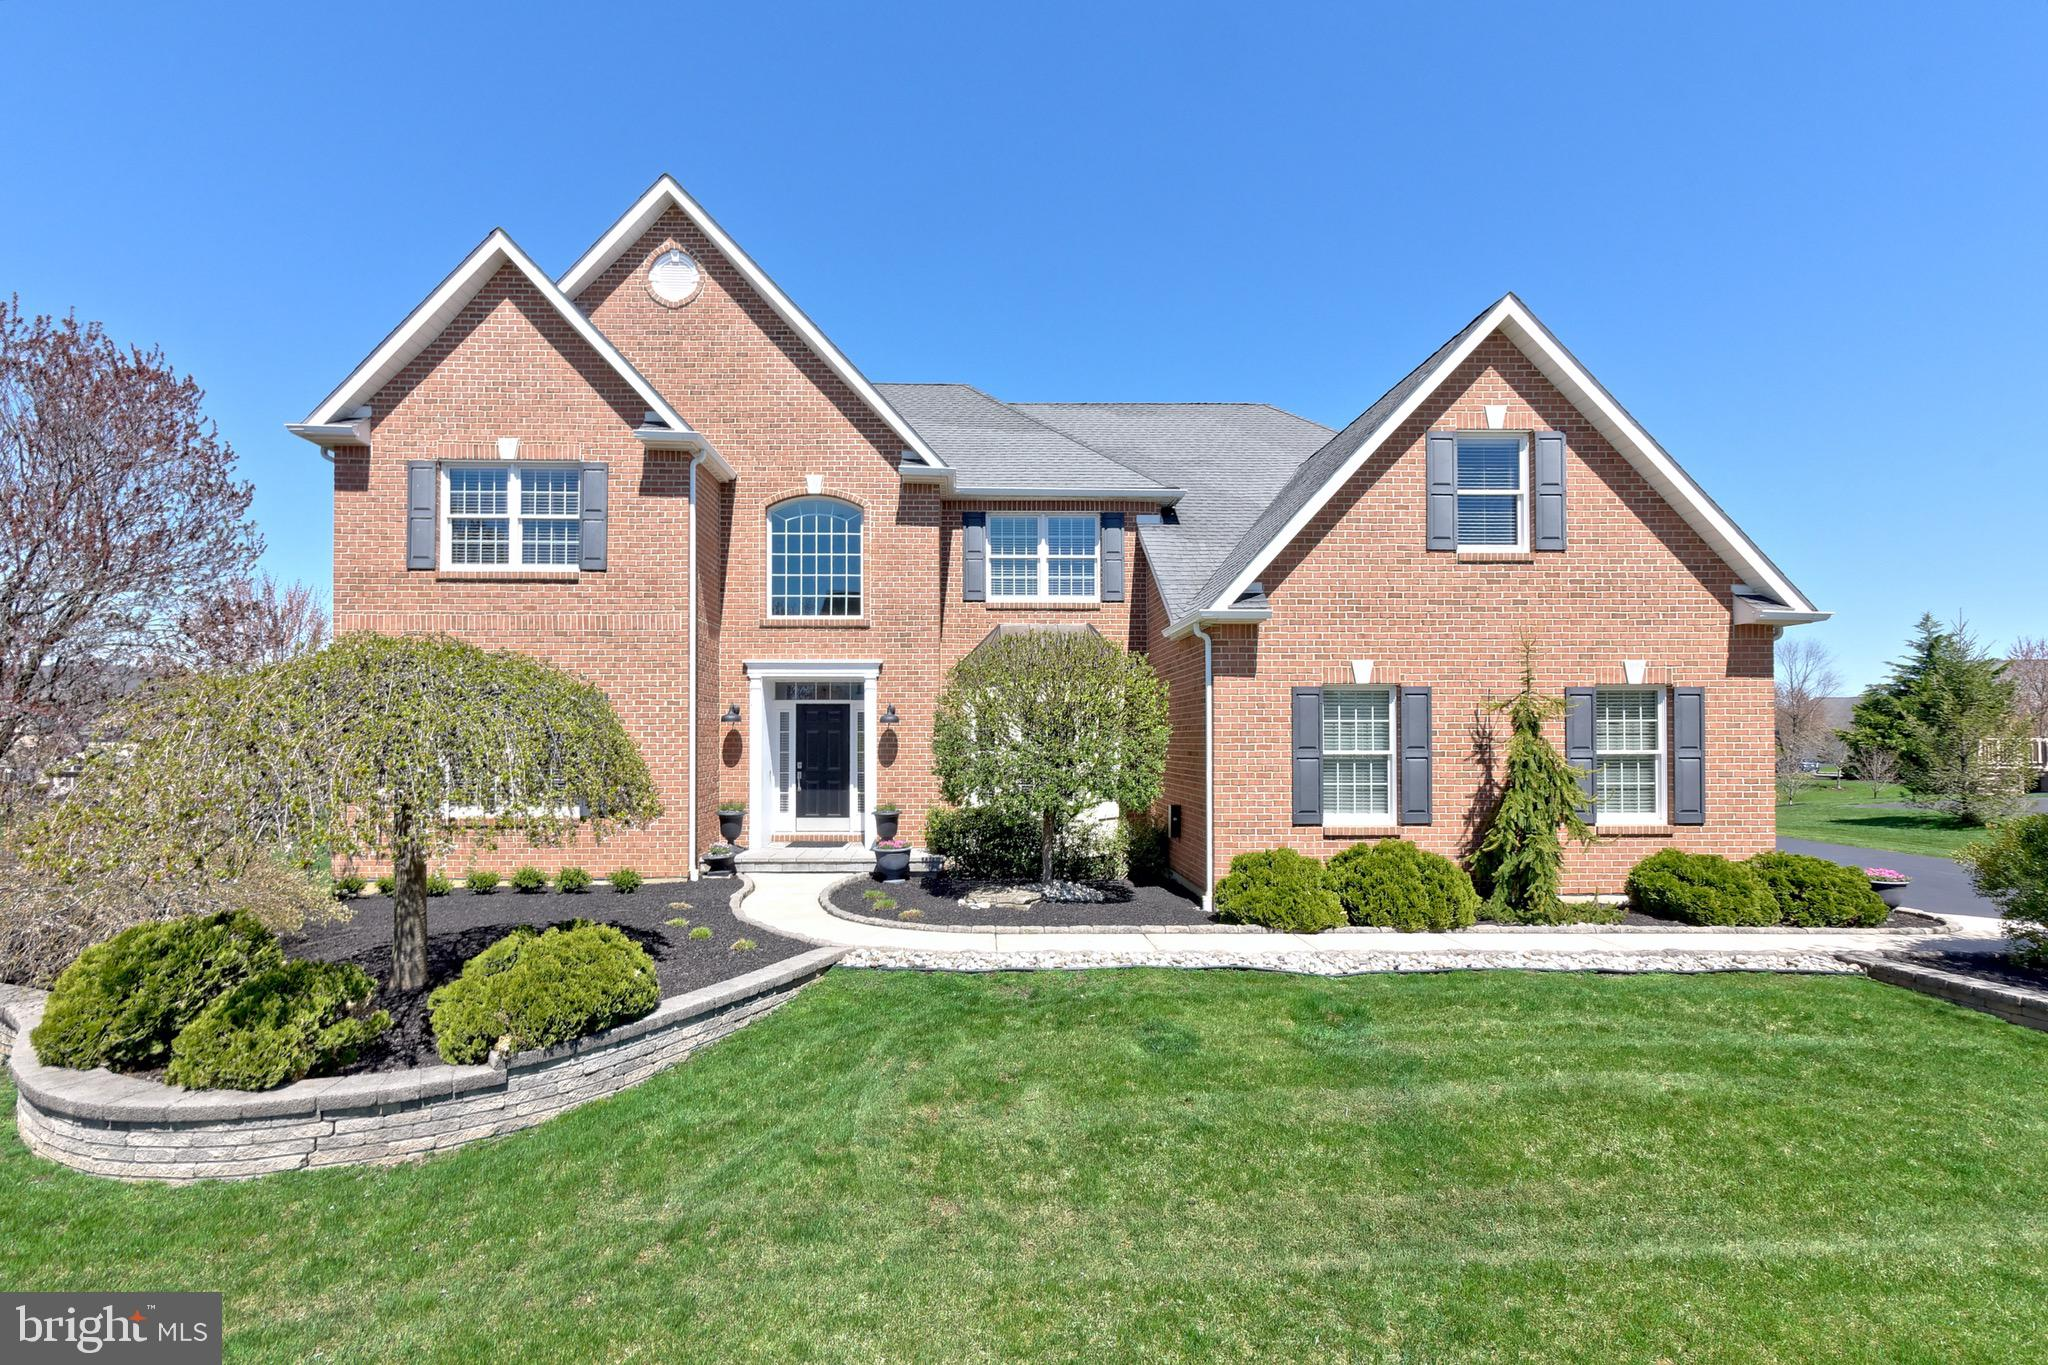 3345 S BAY HILL DRIVE, CENTER VALLEY, PA 18034